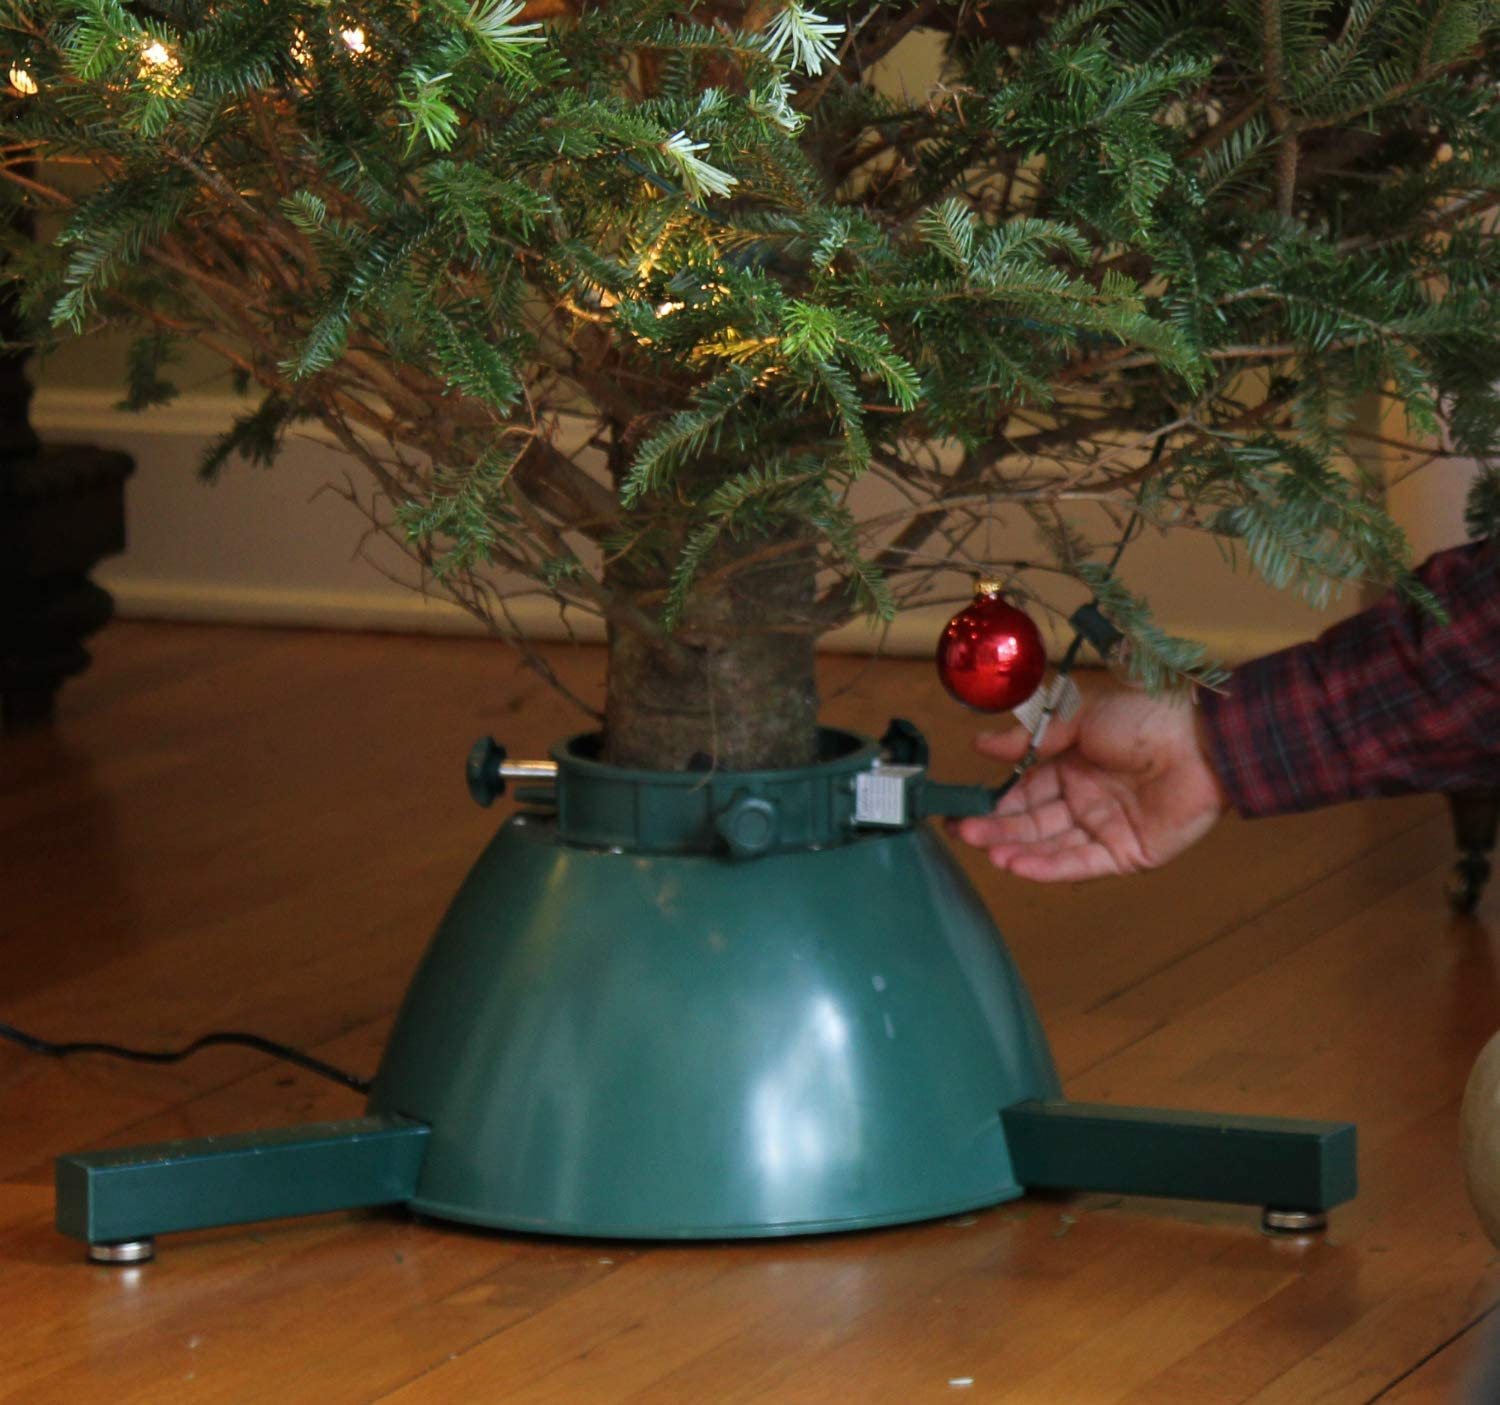 Elf Logic - Rotating Christmas Tree Stand for Live Tree with Remote Control for Rotation and Lights - (Motorized Rotating Display Tree Stand for Live Christmas Trees)